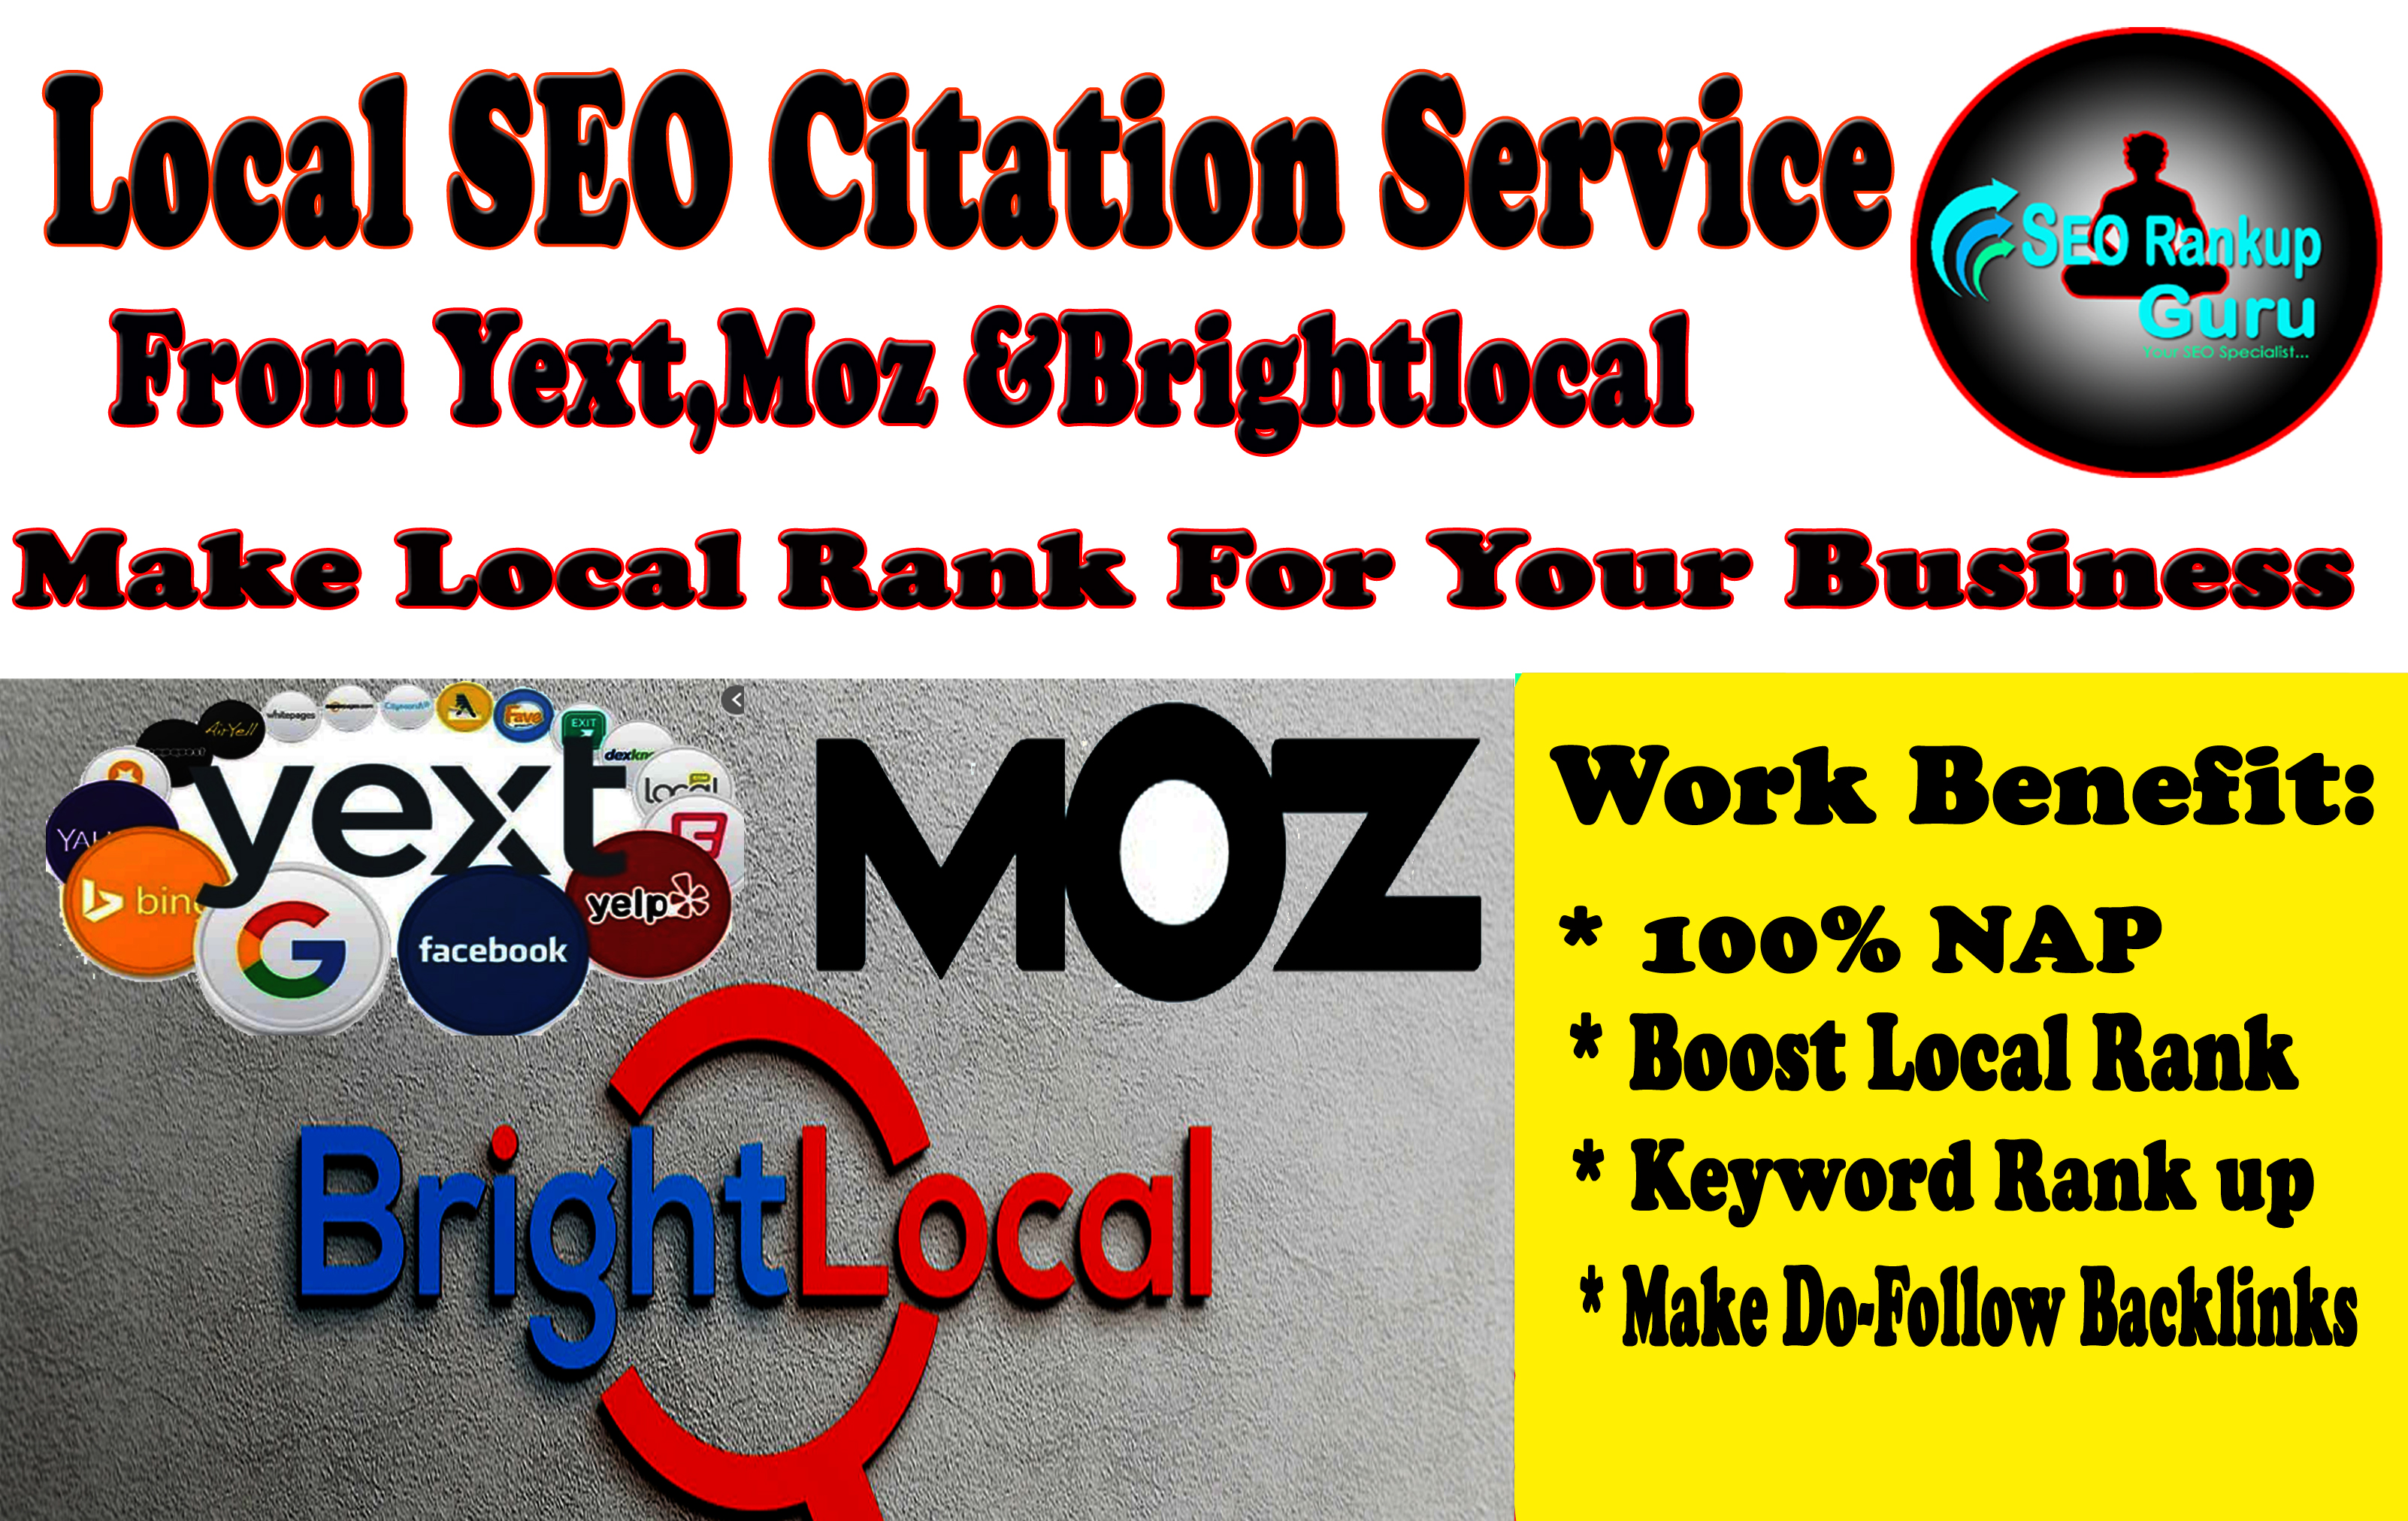 I Will Do Top 75 Local SEO Citation From Yext, Moz And Brightlocal List For Local Rank